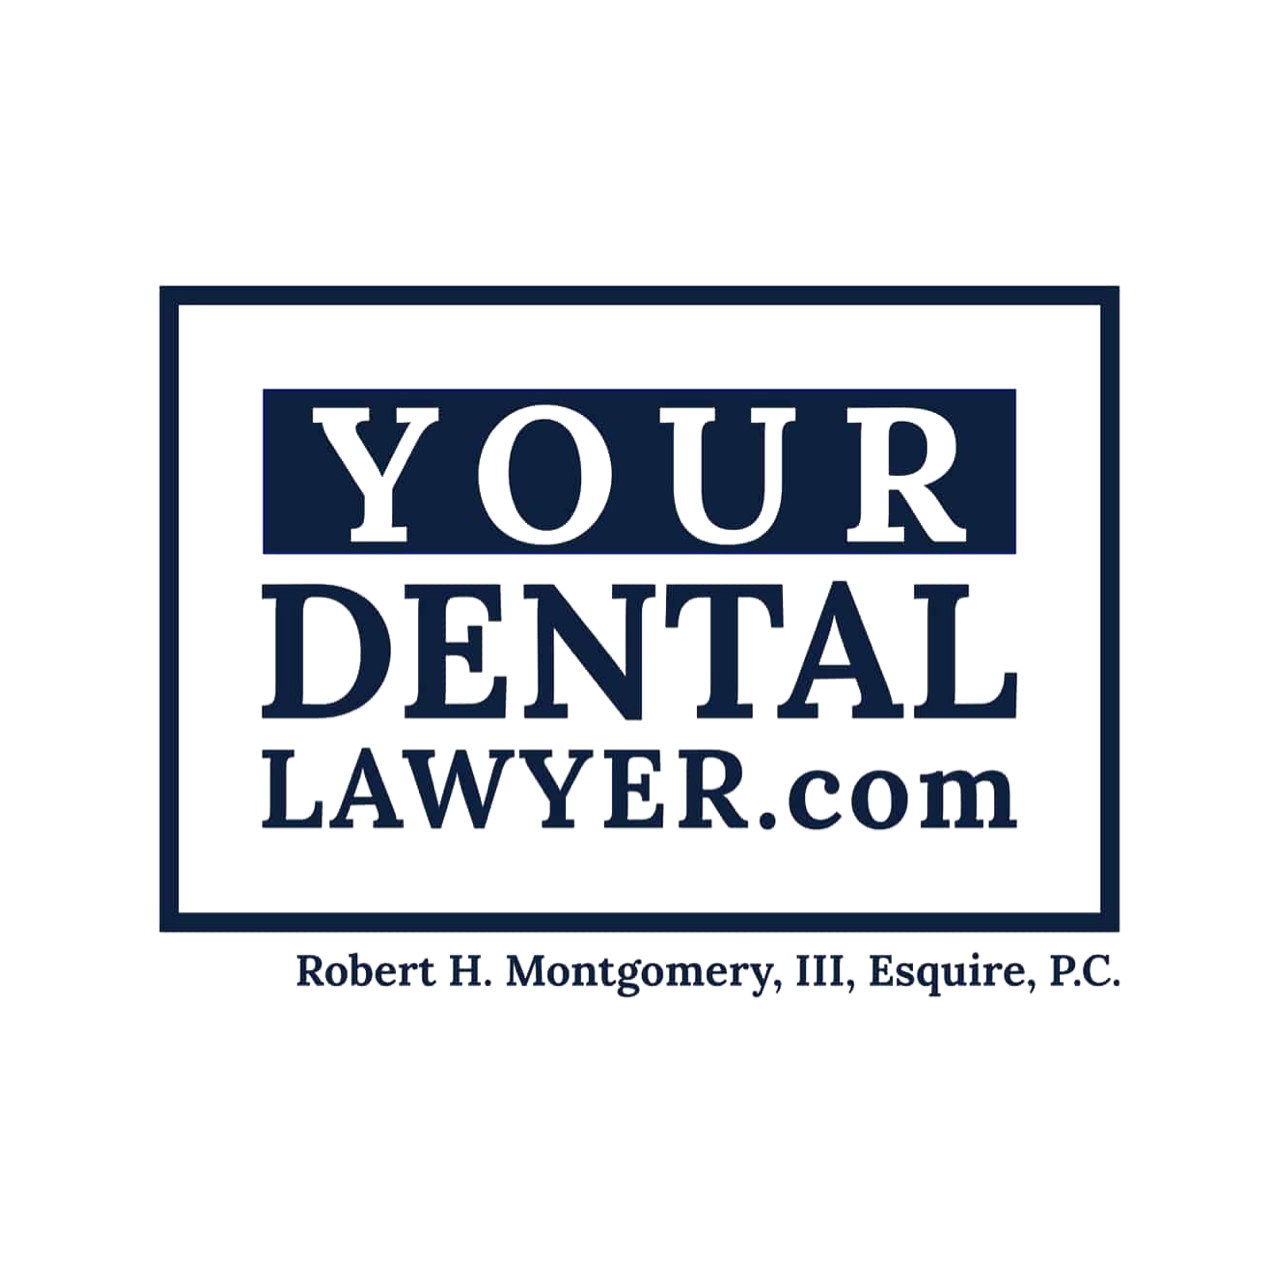 Your Dental Lawyer